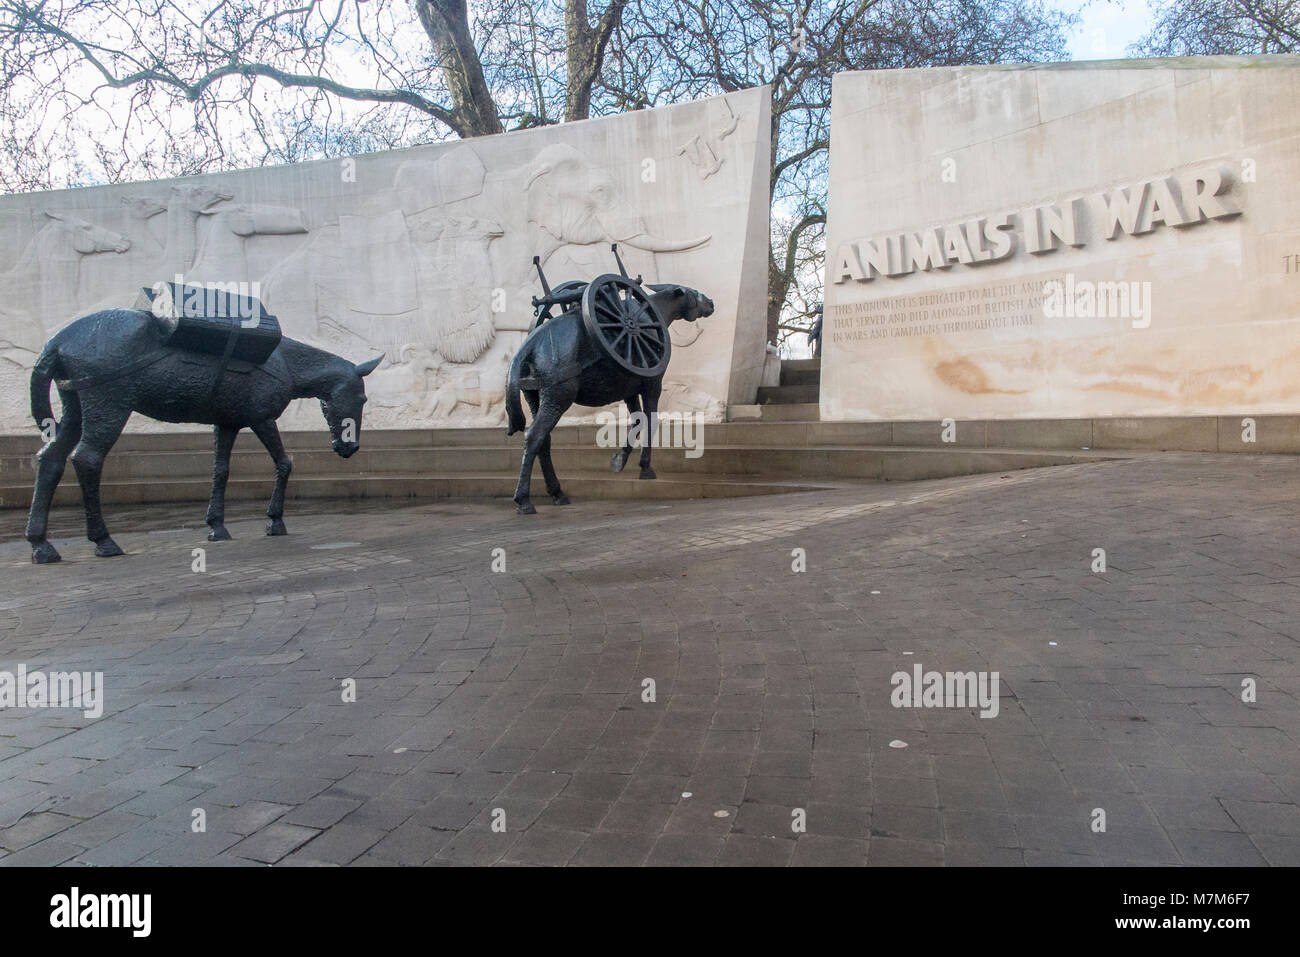 Animals in War statues by Hyde Park - Stock Image